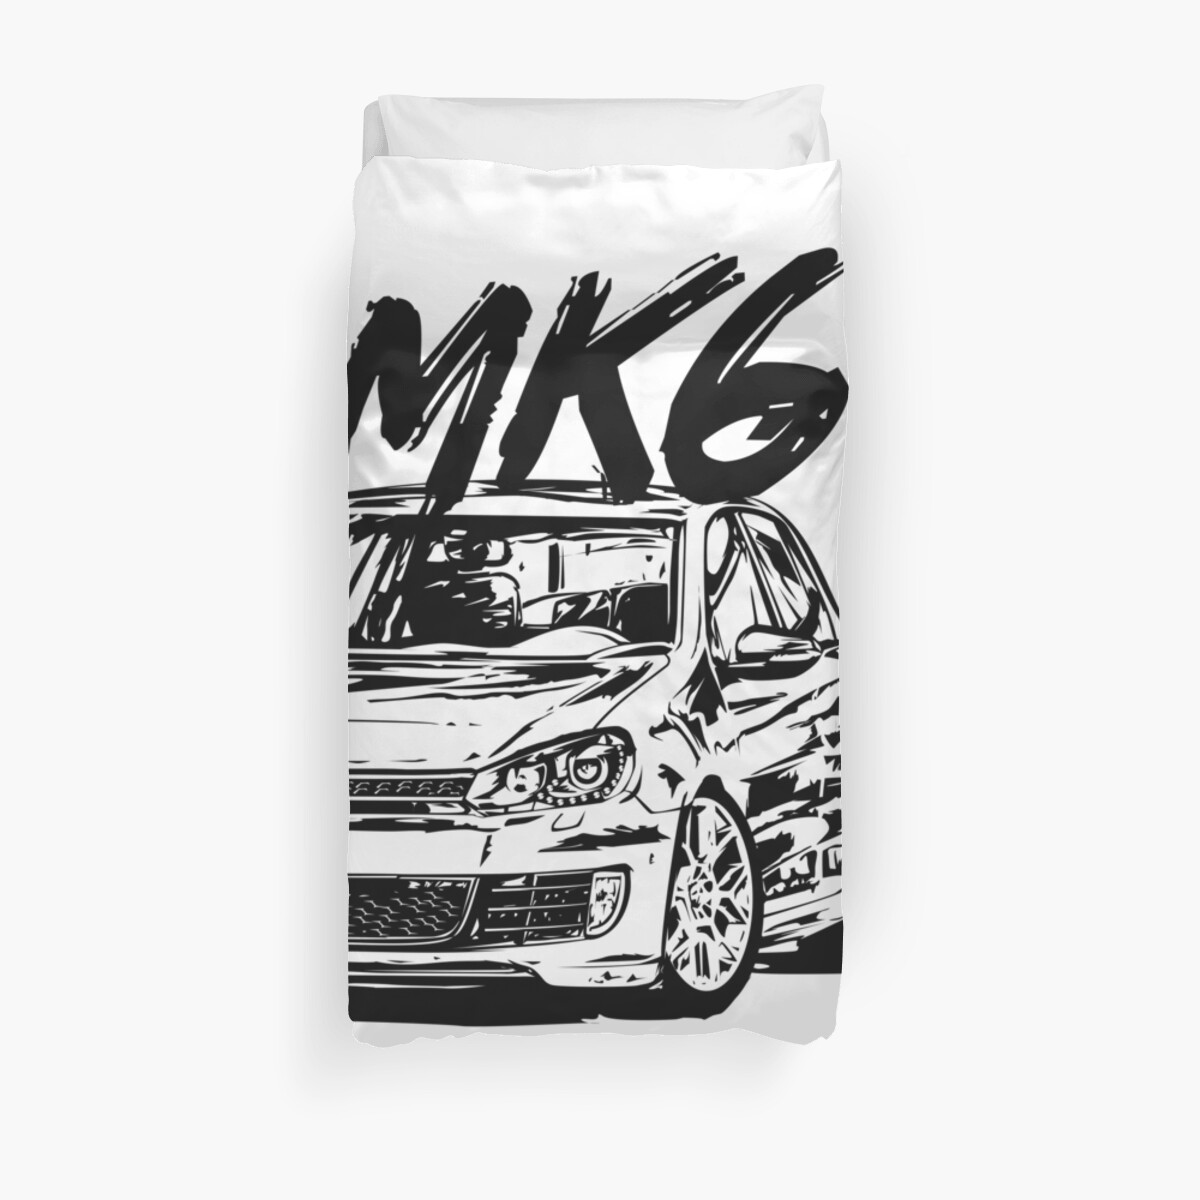 Golf 6 MK6 & quot; Dirty Style & quot; by glstkrrn